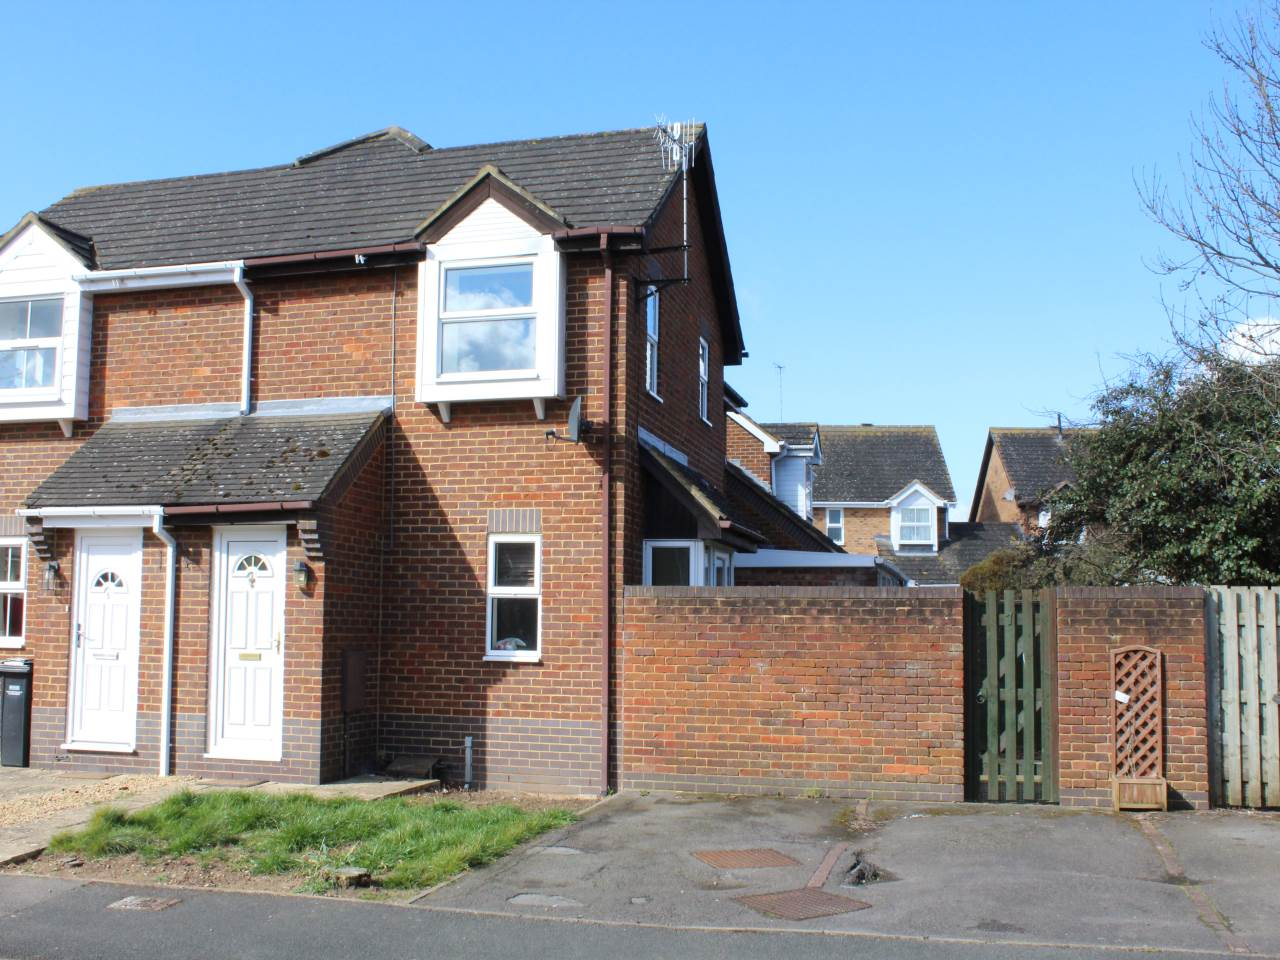 7 St Johns Close, Evesham, Worcestershire